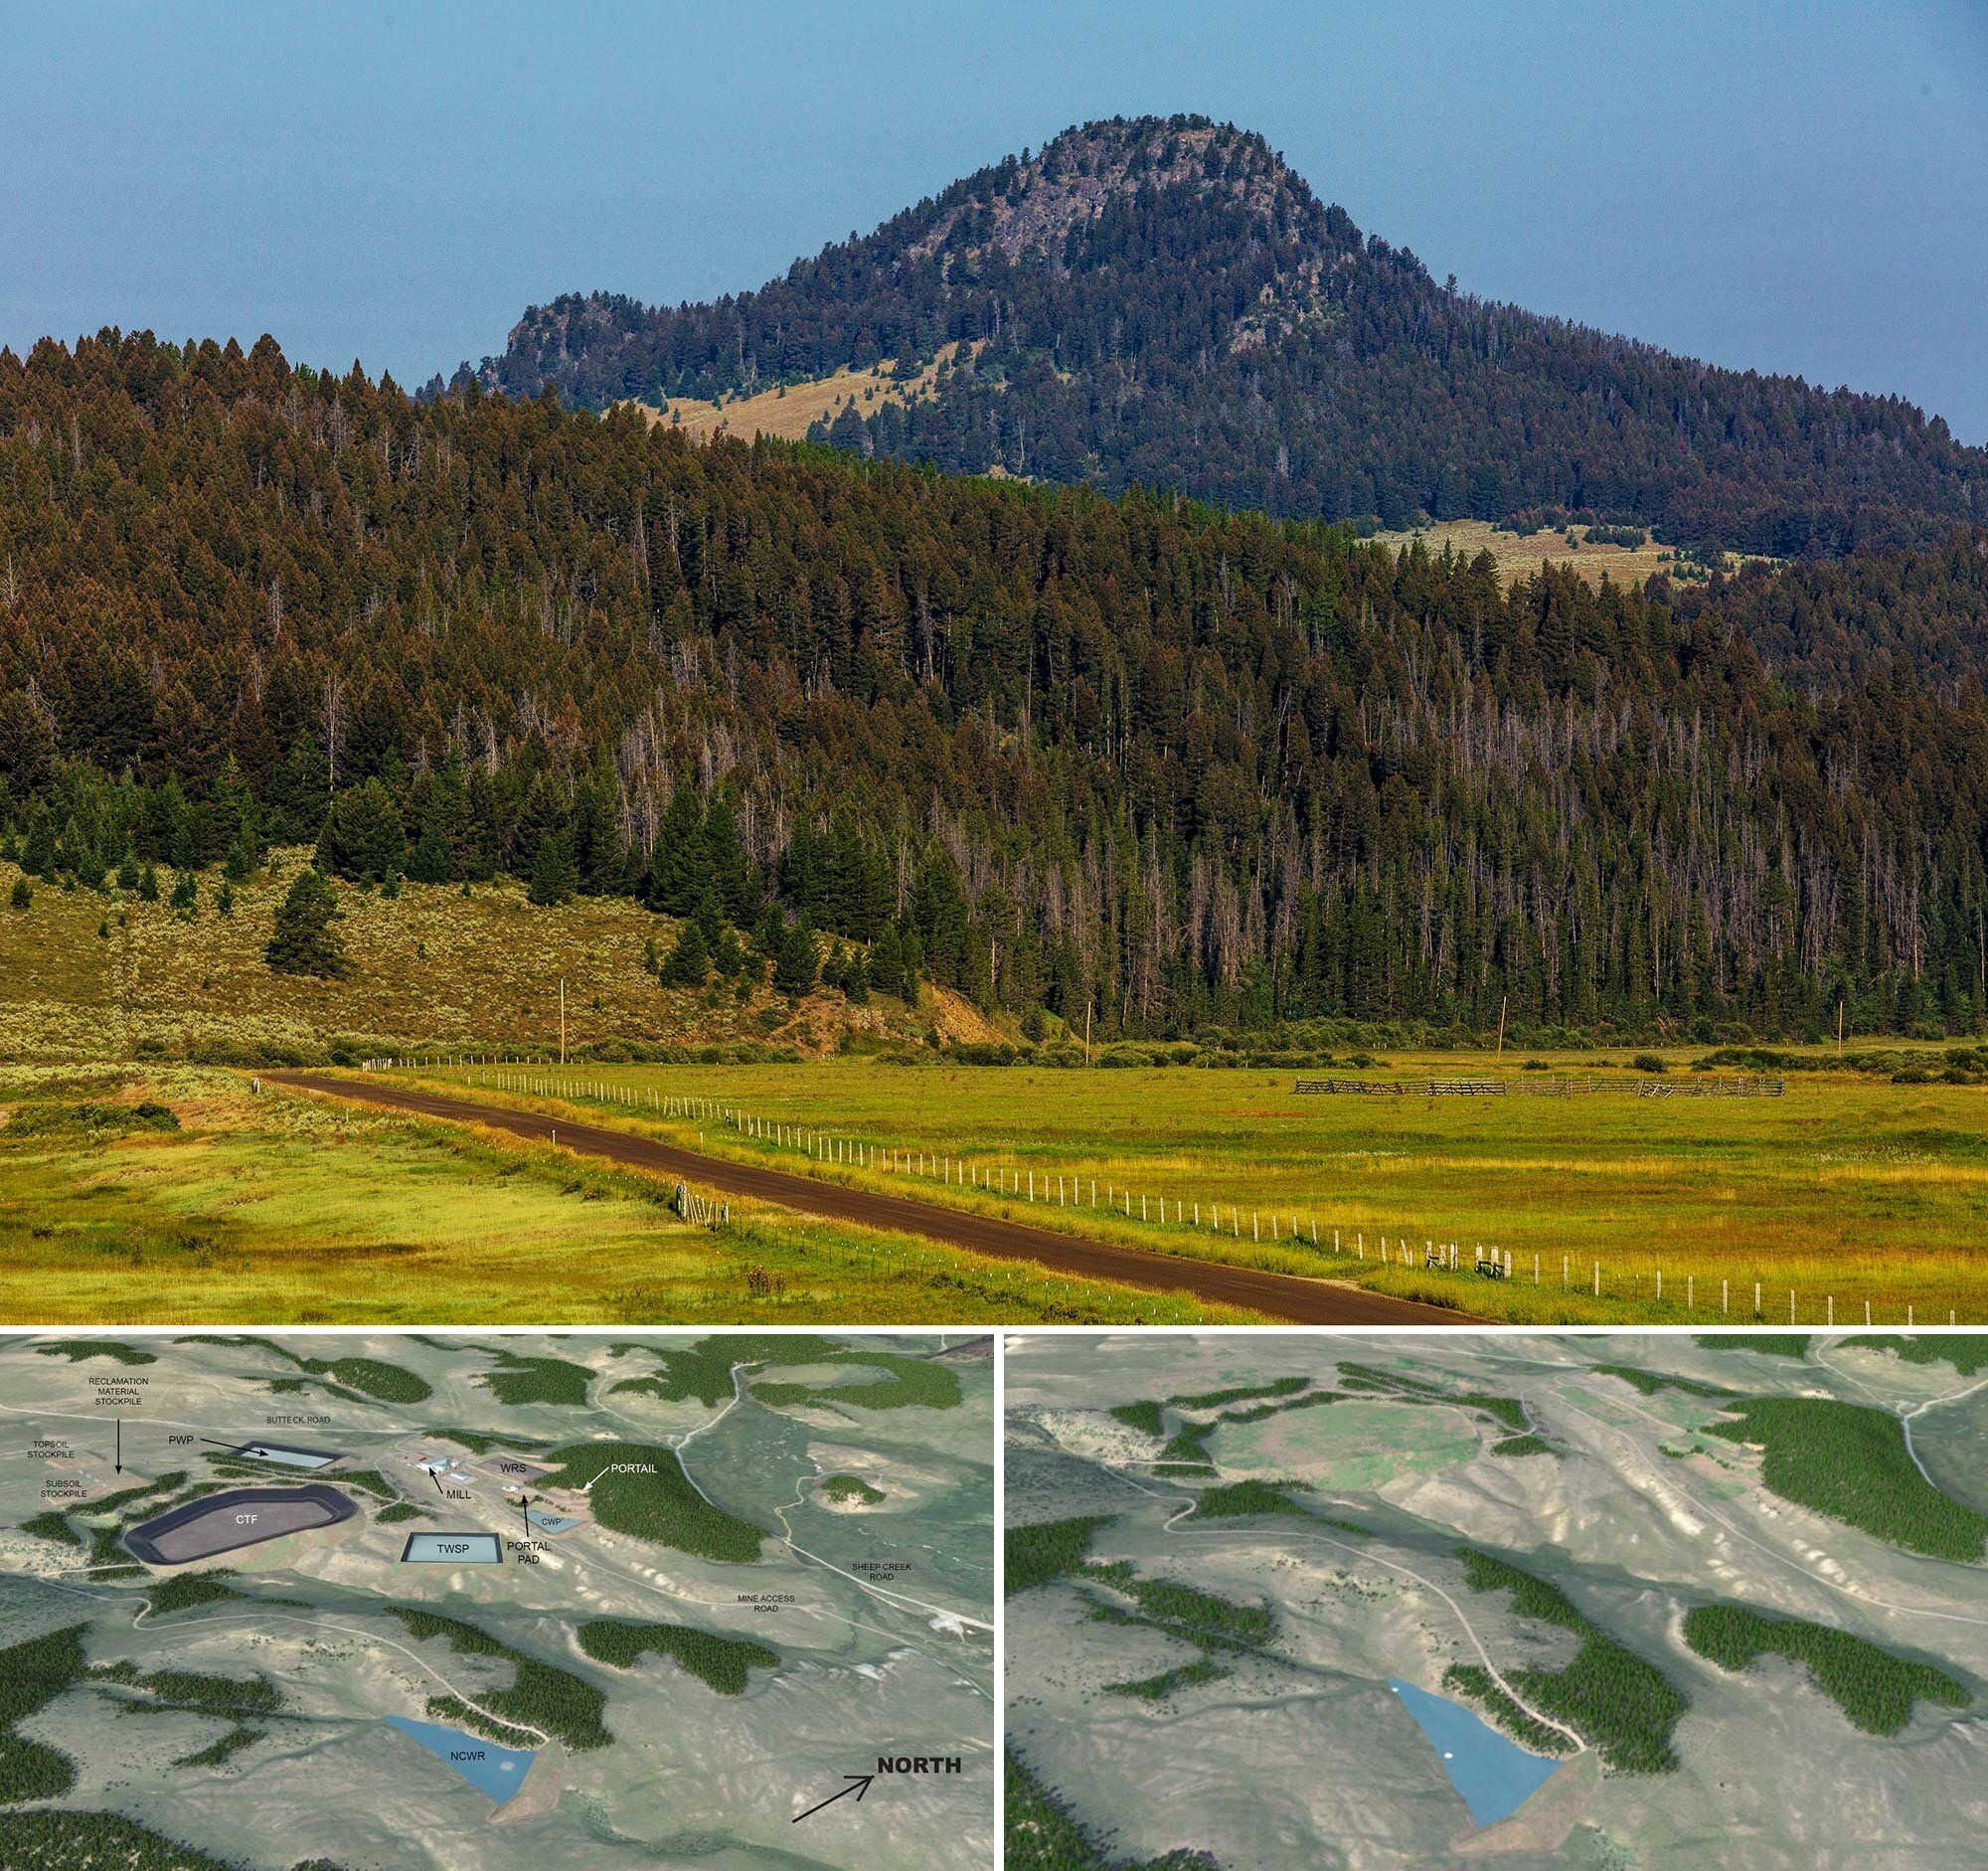 Top: A picture of the project site and Black Butte, the feature for which the proposed mine is named. Bottom left: A renderin